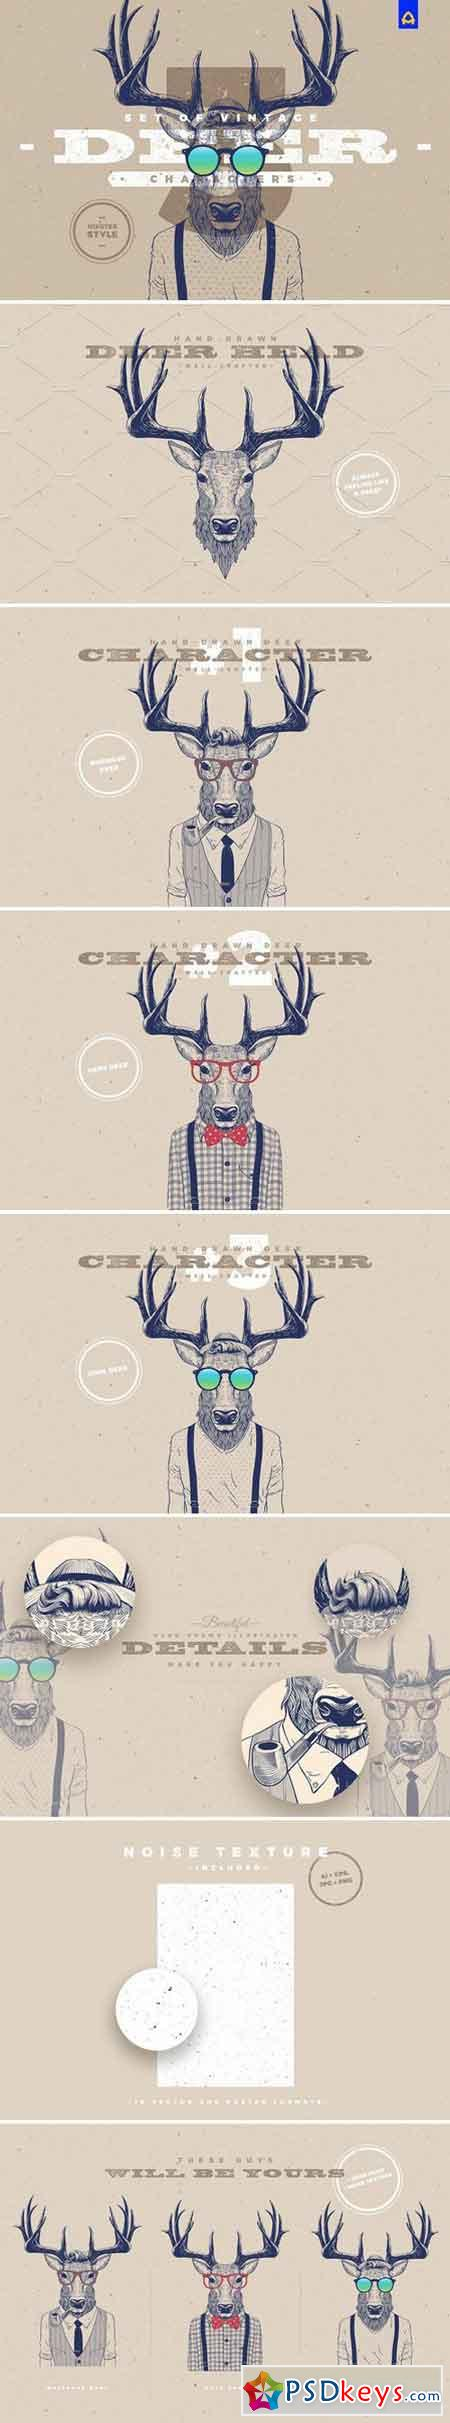 Hipster Deer Characters 1831347